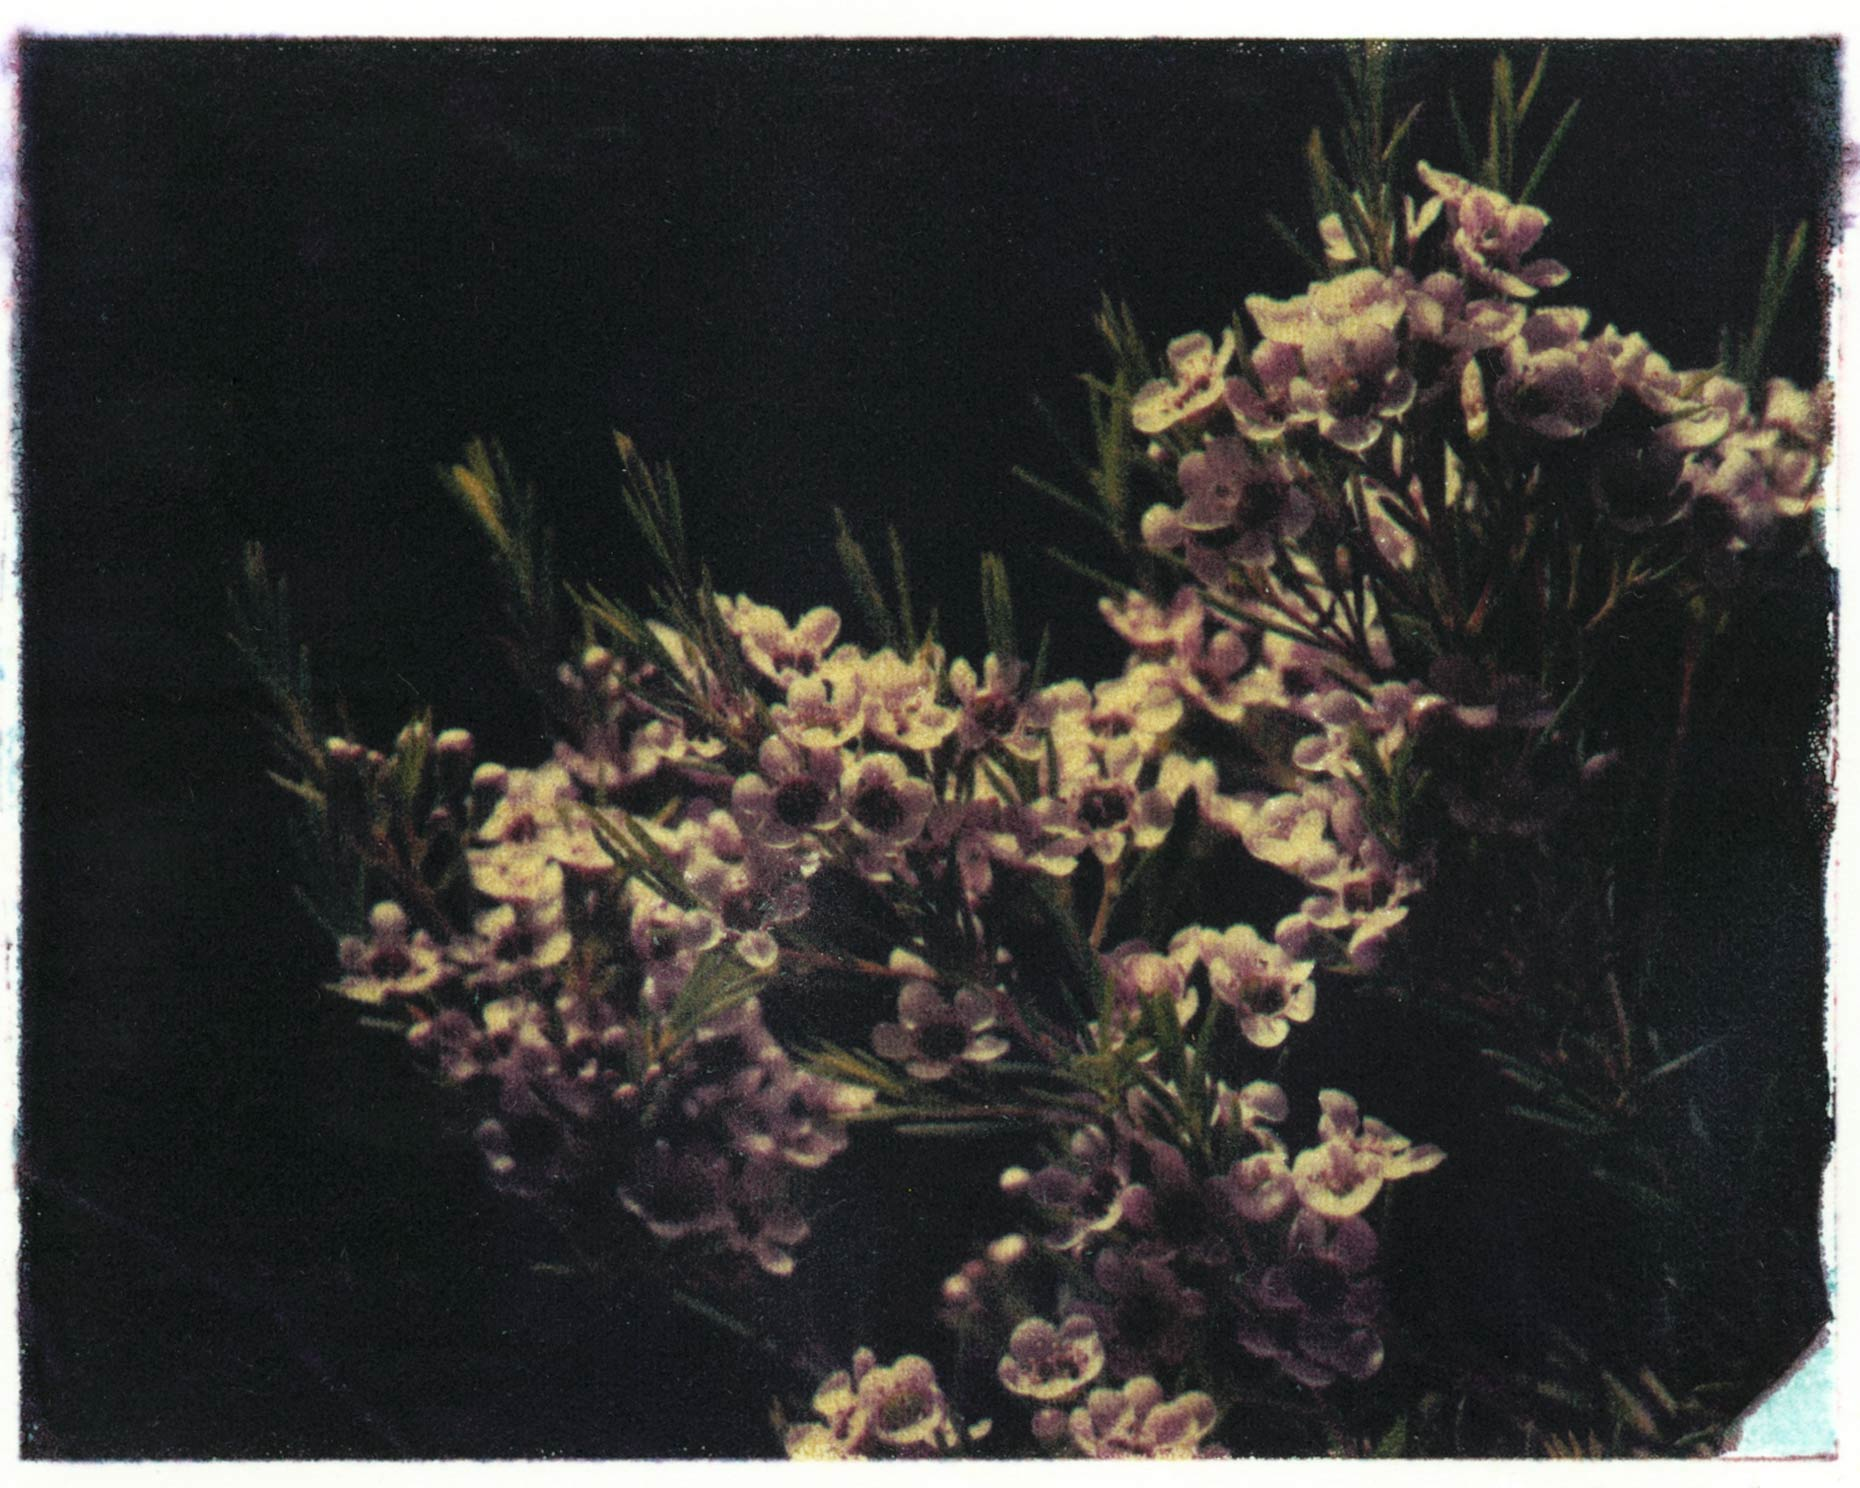 Polaroid Transfer of a Wax Flower. Personal Photography. Bob Polett Photography Lancaster PA